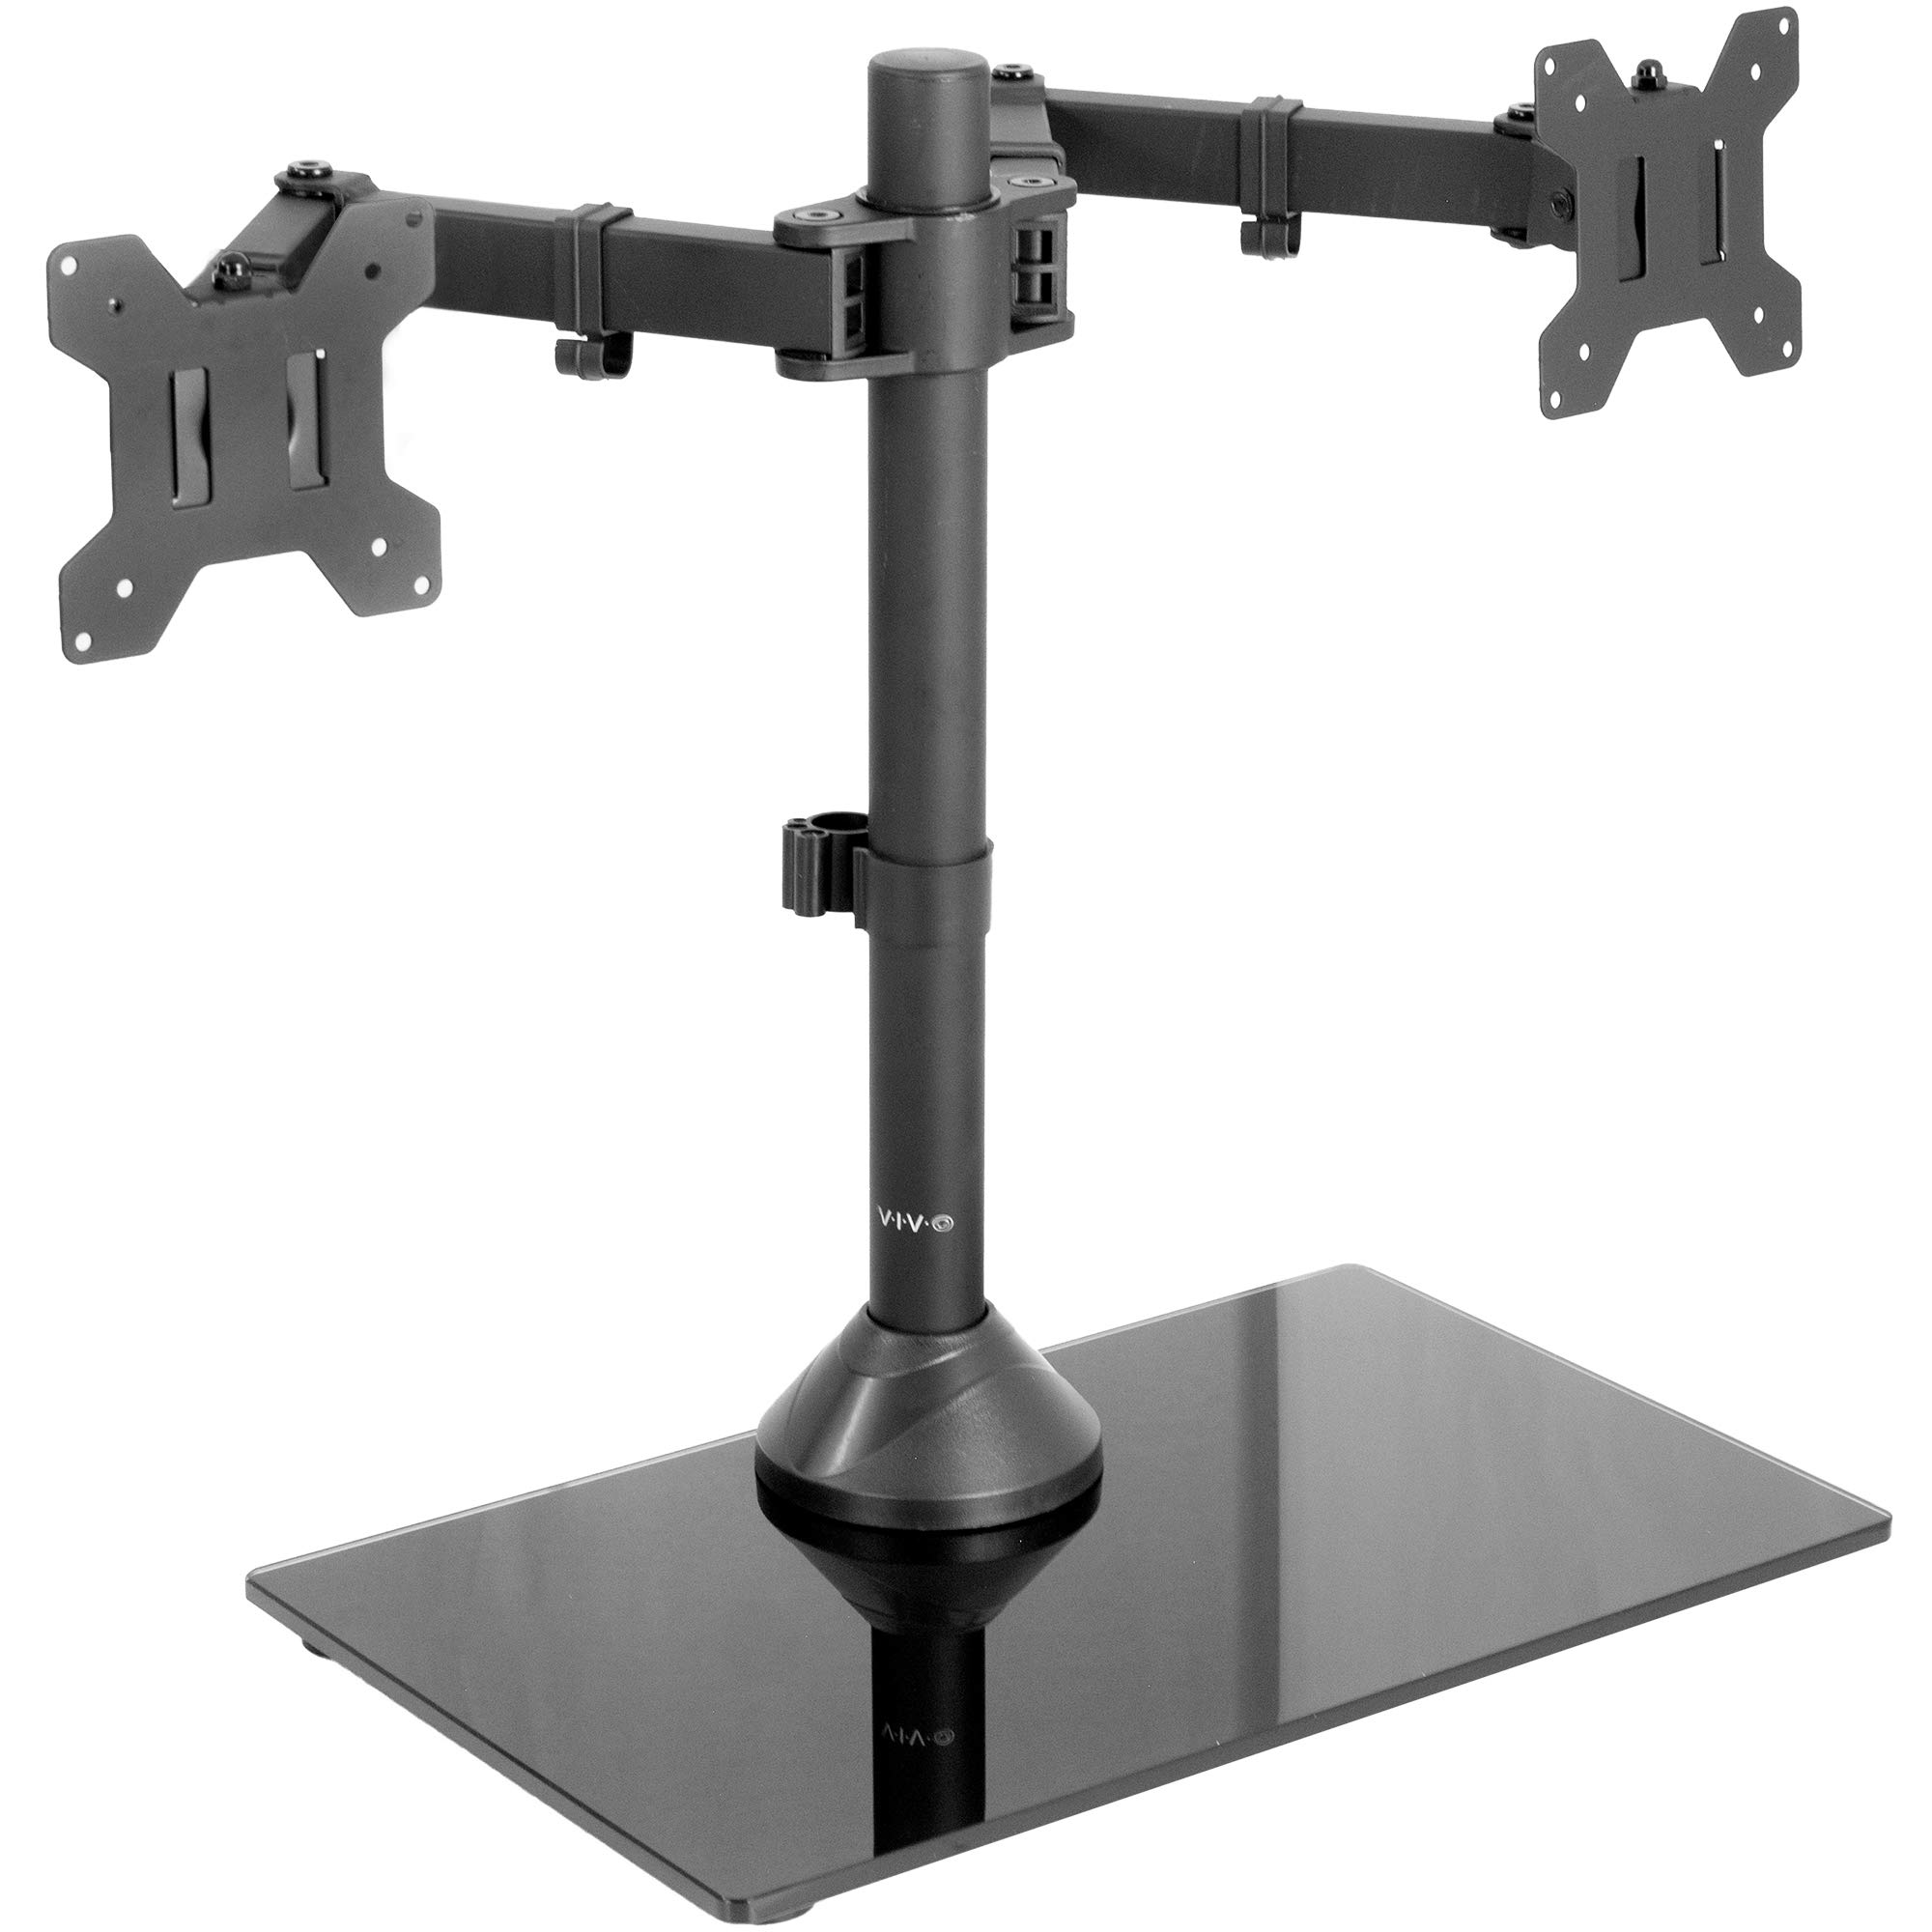 VIVO Black Dual Monitor Stand Adjustable Mount with Freestanding Glass Base   fits 2 Screens up to 27inches (STAND-V002FG) by VIVO